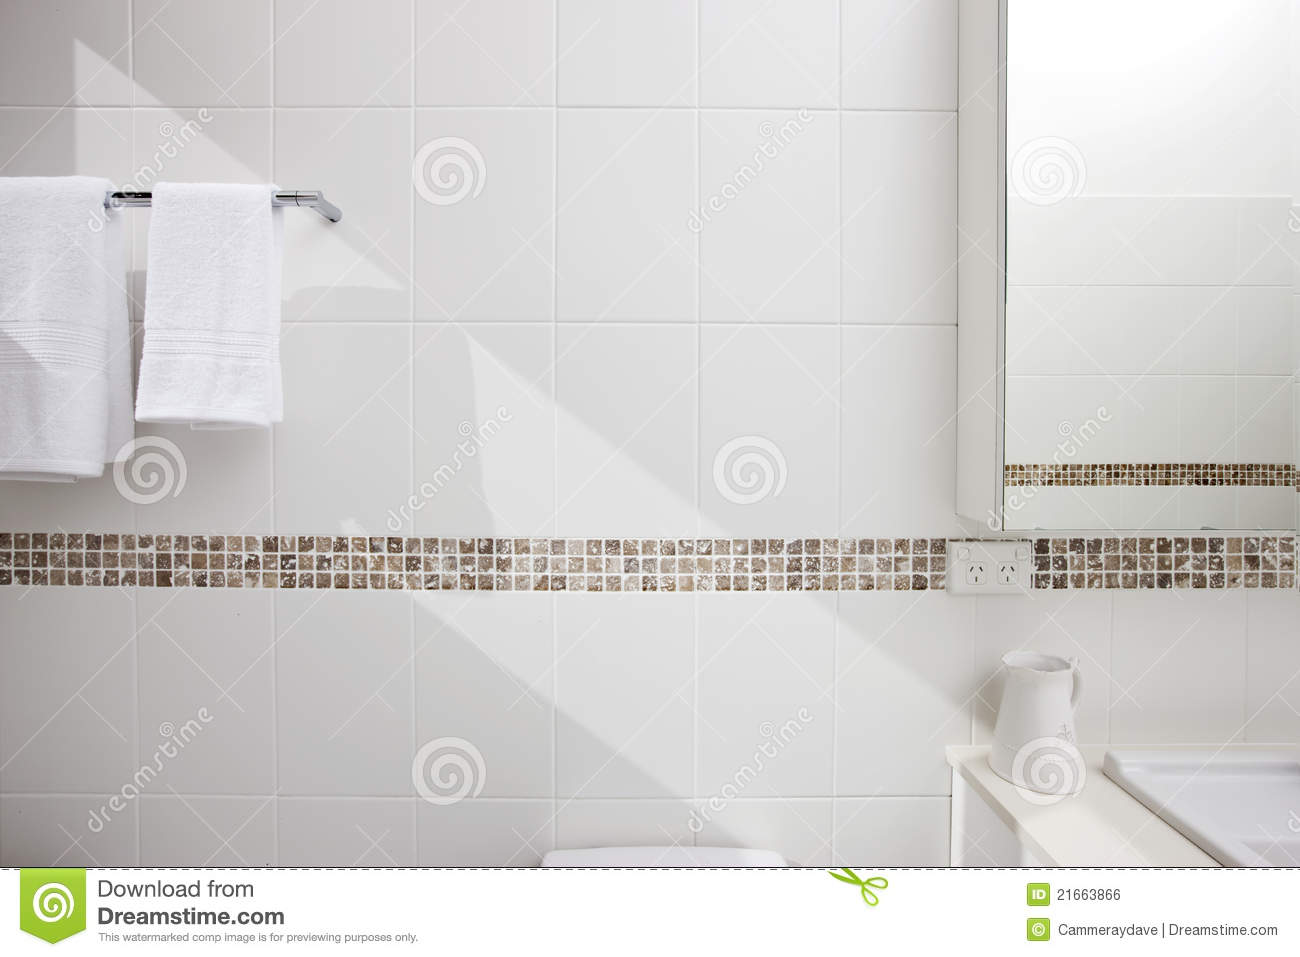 Bathroom Tiles Background bathroom white tiles background royalty free stock image - image